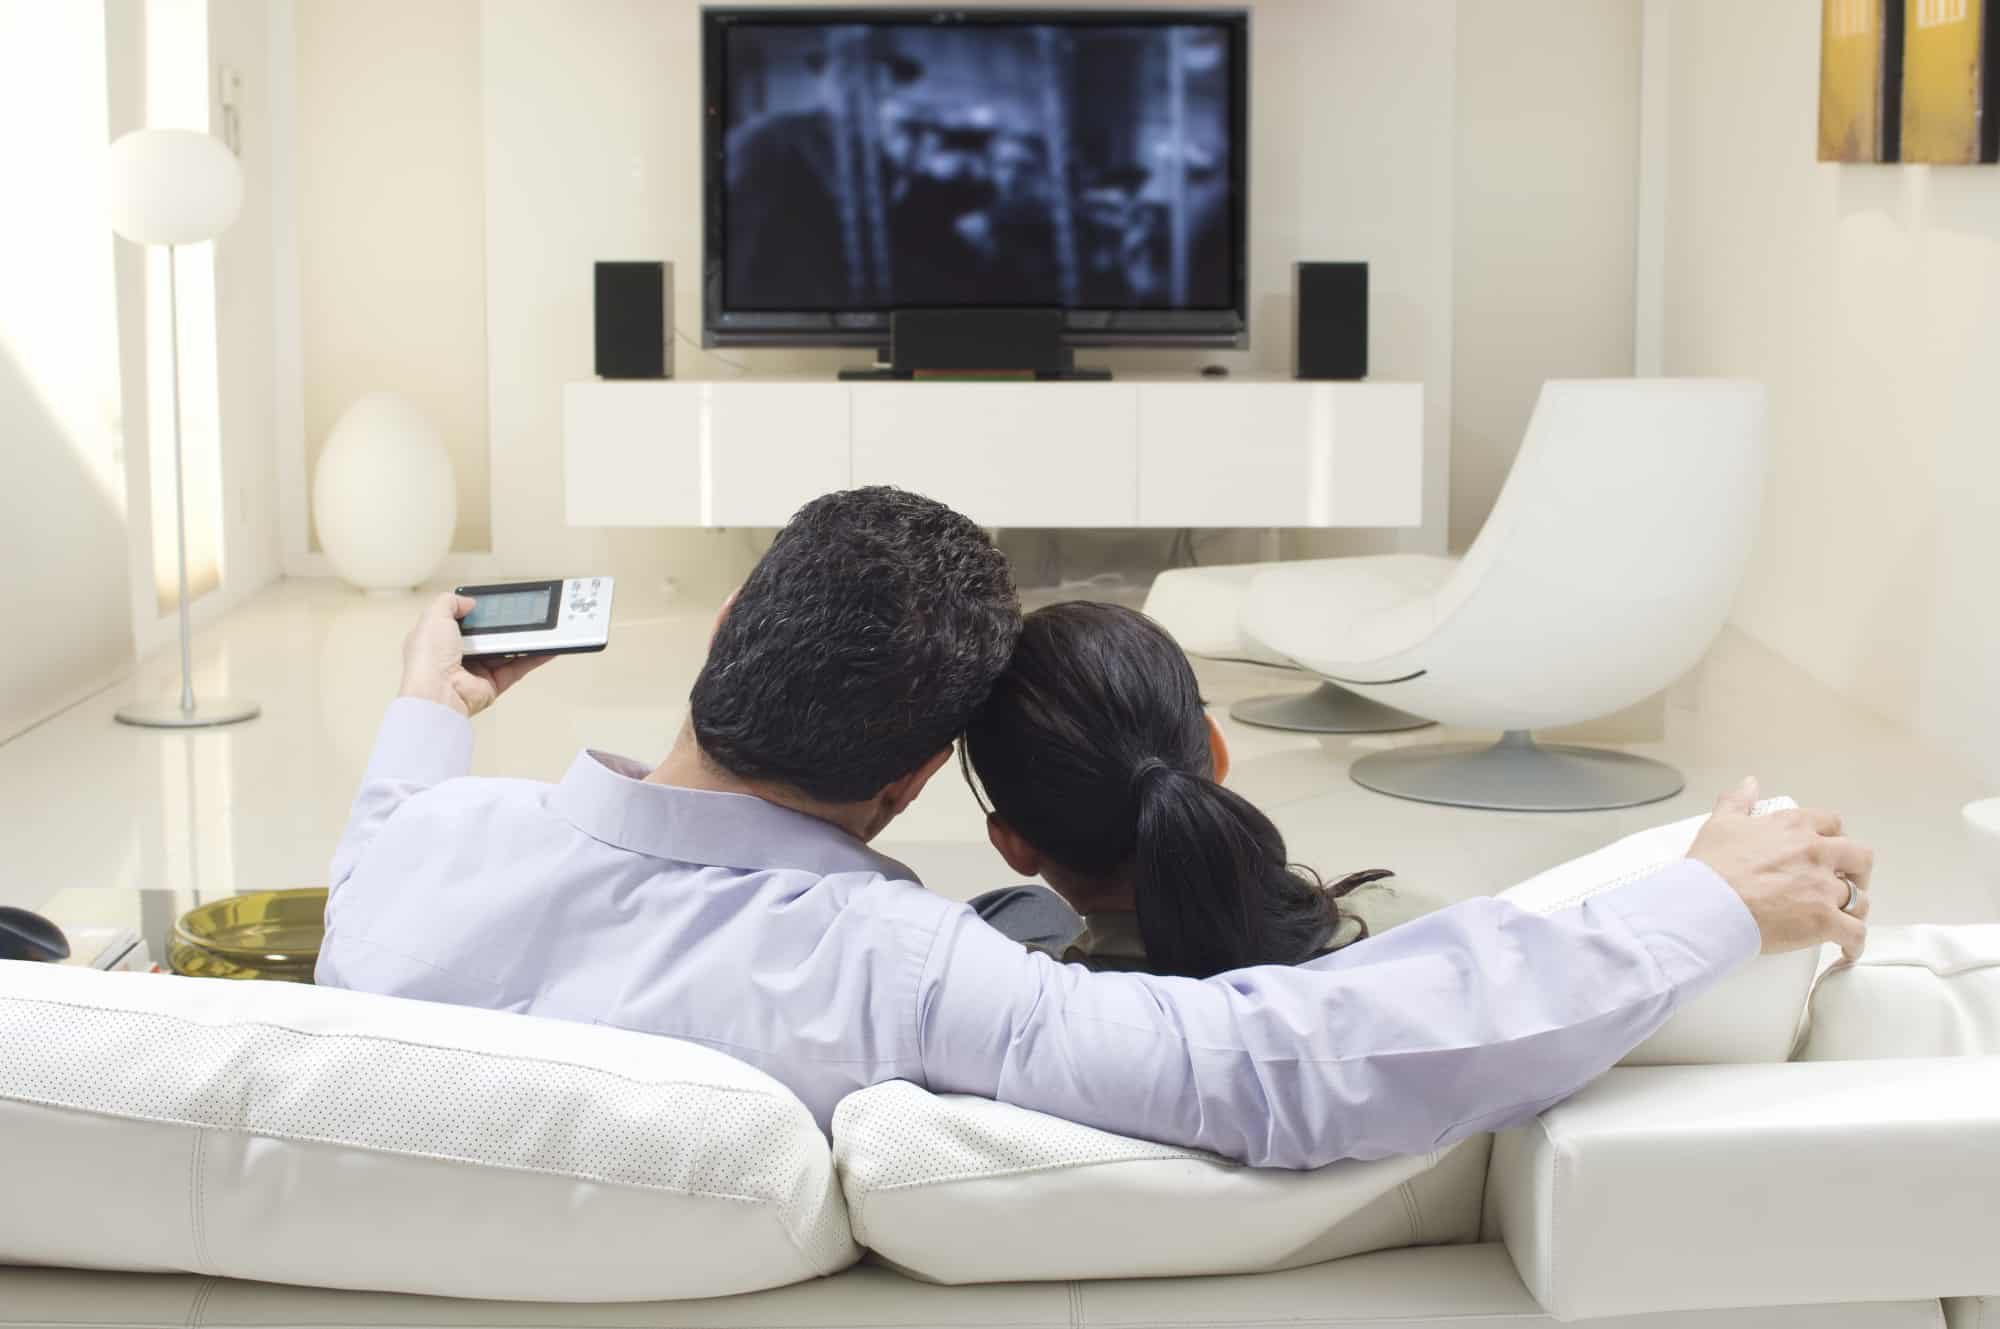 Couple watching cable television on a high-definition TV with surround sound speakers, cuddling on a white leather couch.